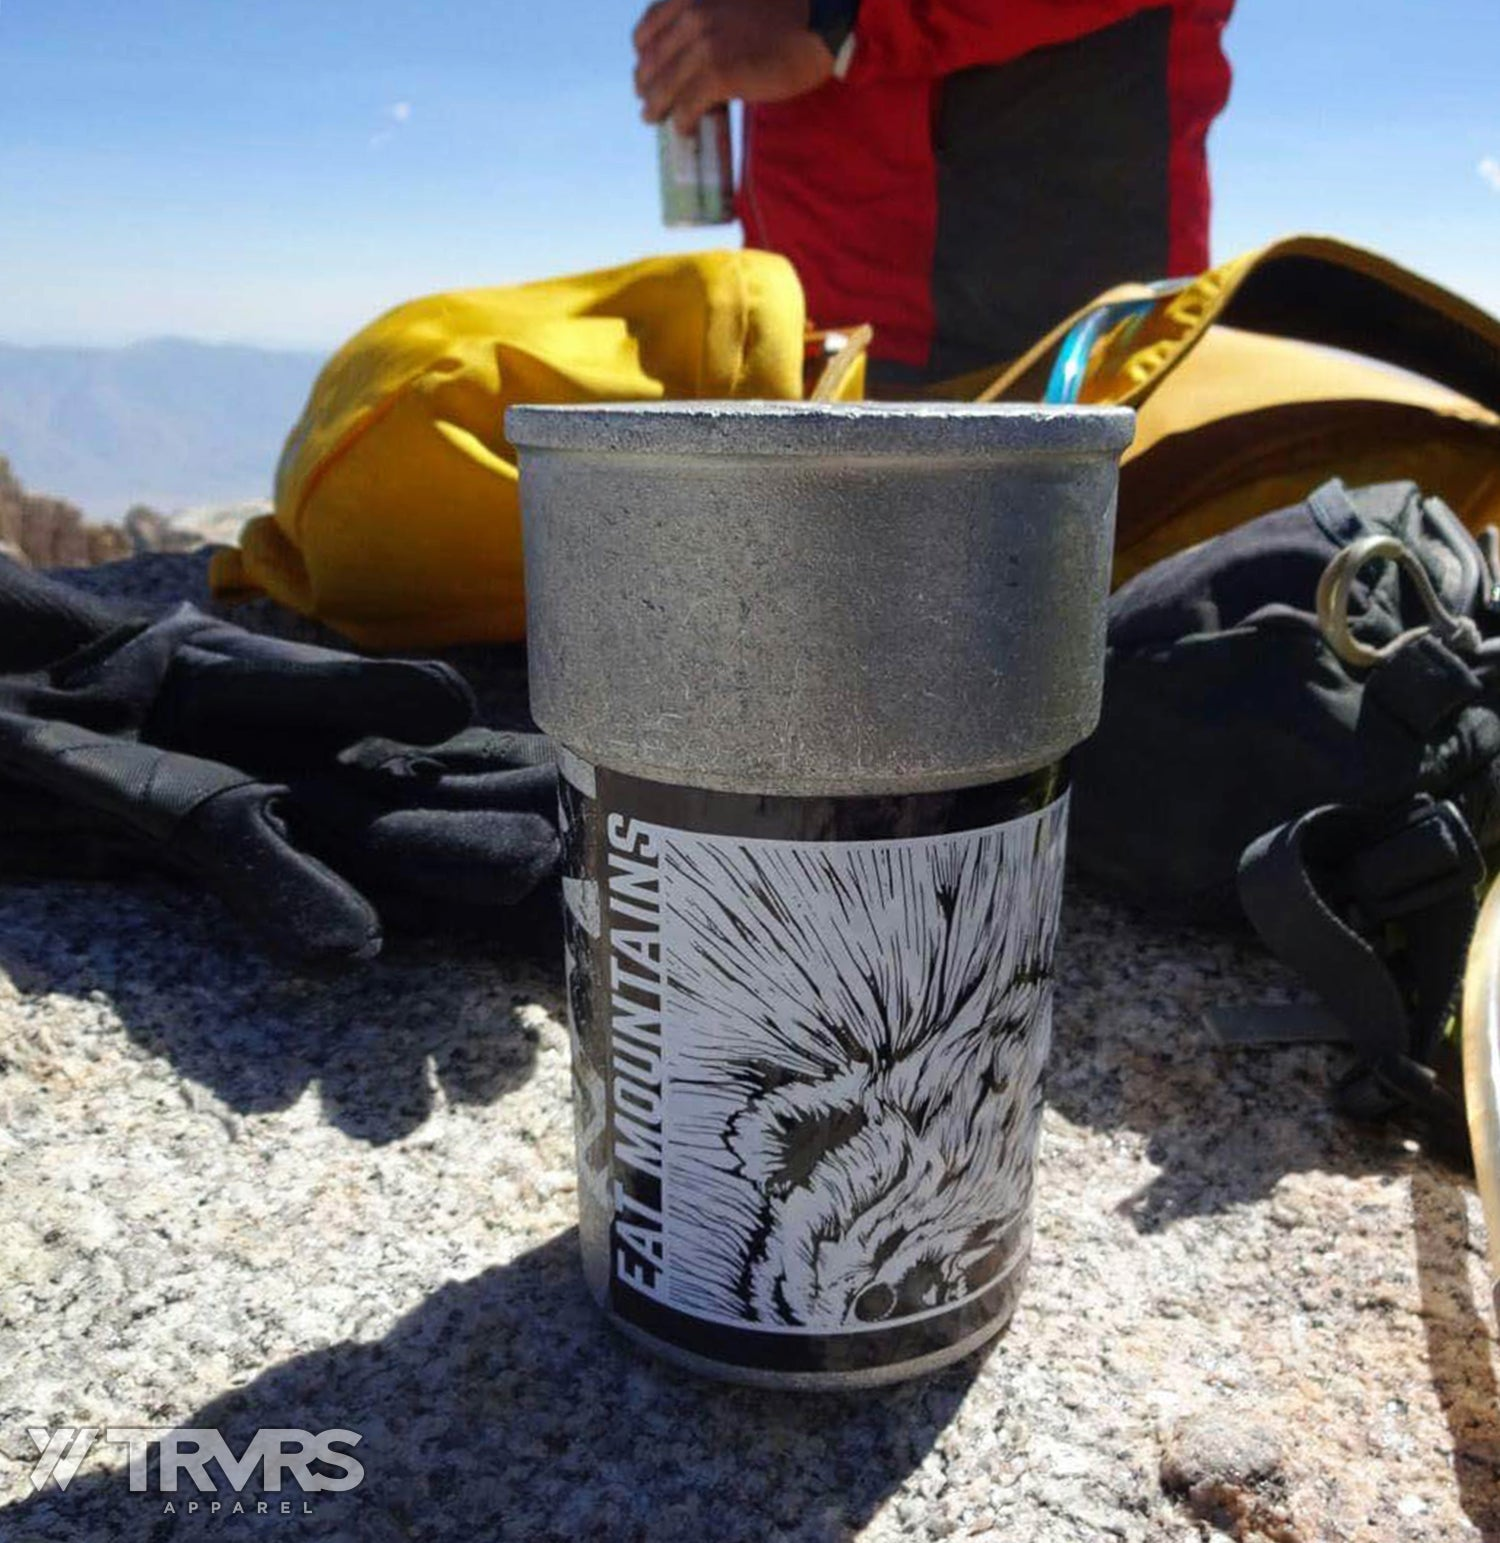 Summit Register of Mount Russell with TRVRS Apparel Sticker | TRVRS APPAREL